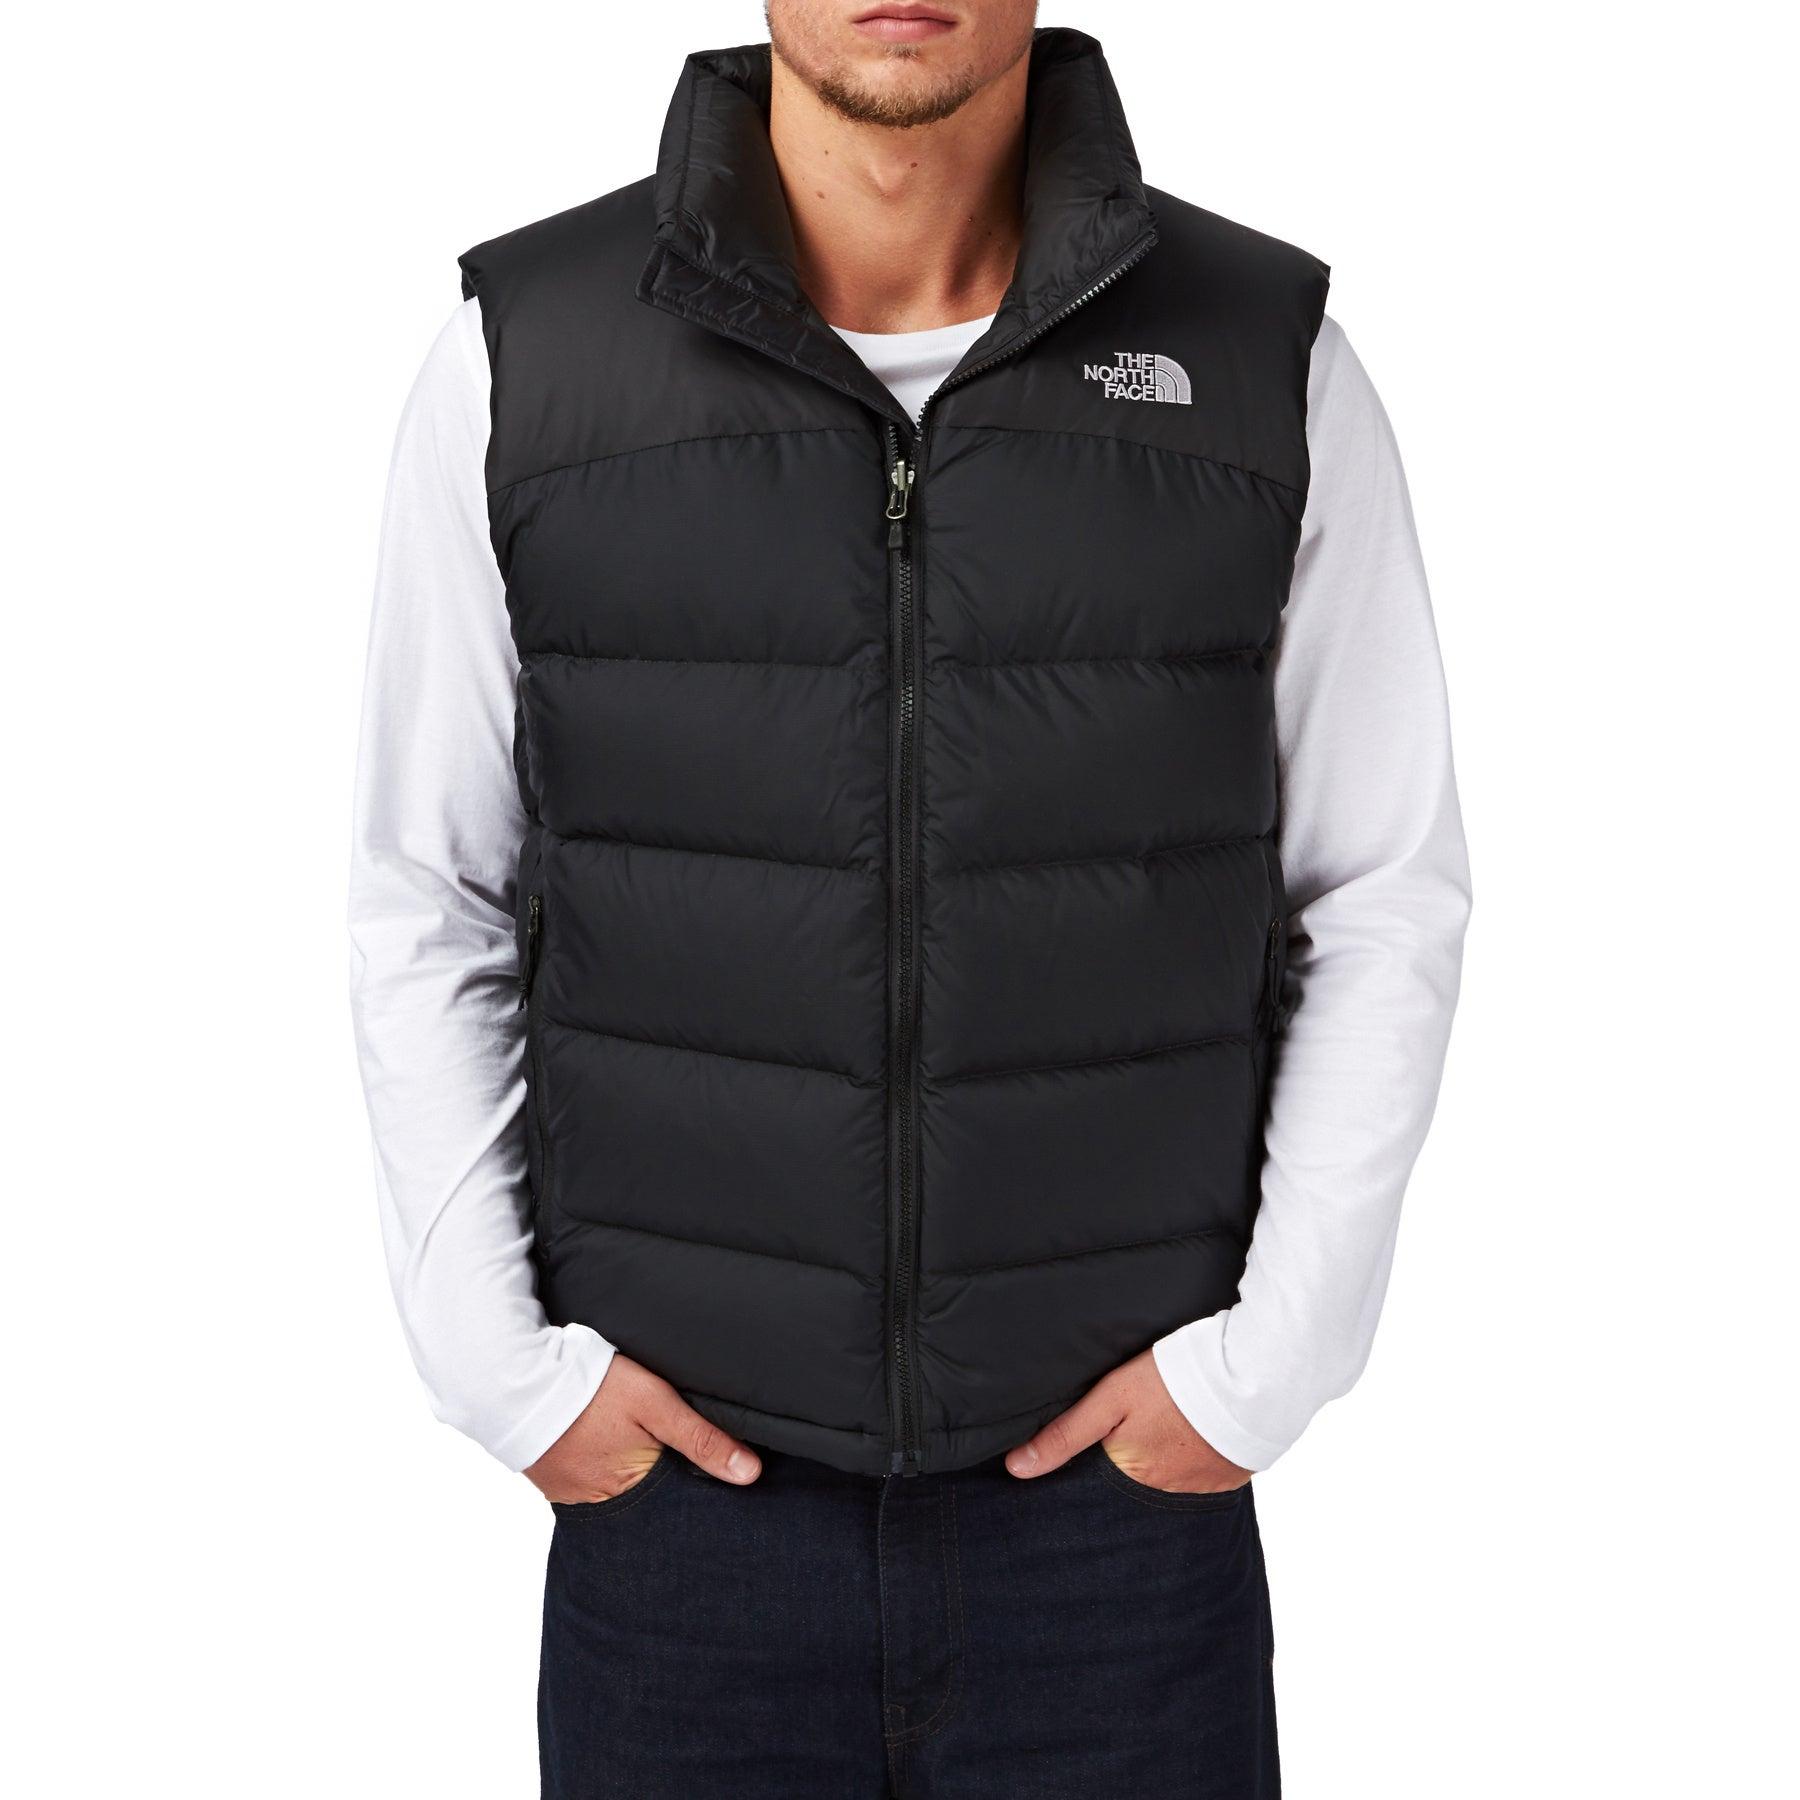 c917ba9d15f9 North Face Nuptse 2 Body Warmer